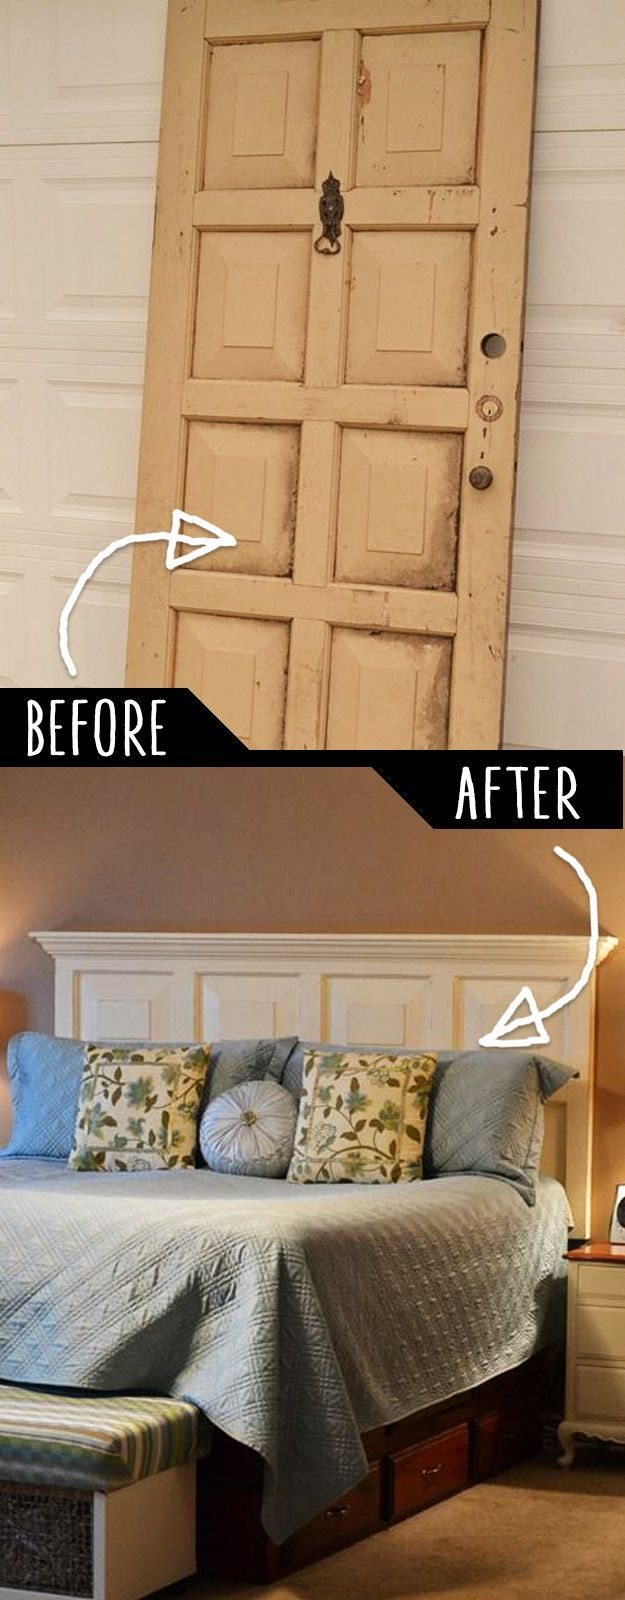 Genial DIY Furniture Hacks | Door Headboard | Cool Ideas For Creative Do It Yourself  Furniture |